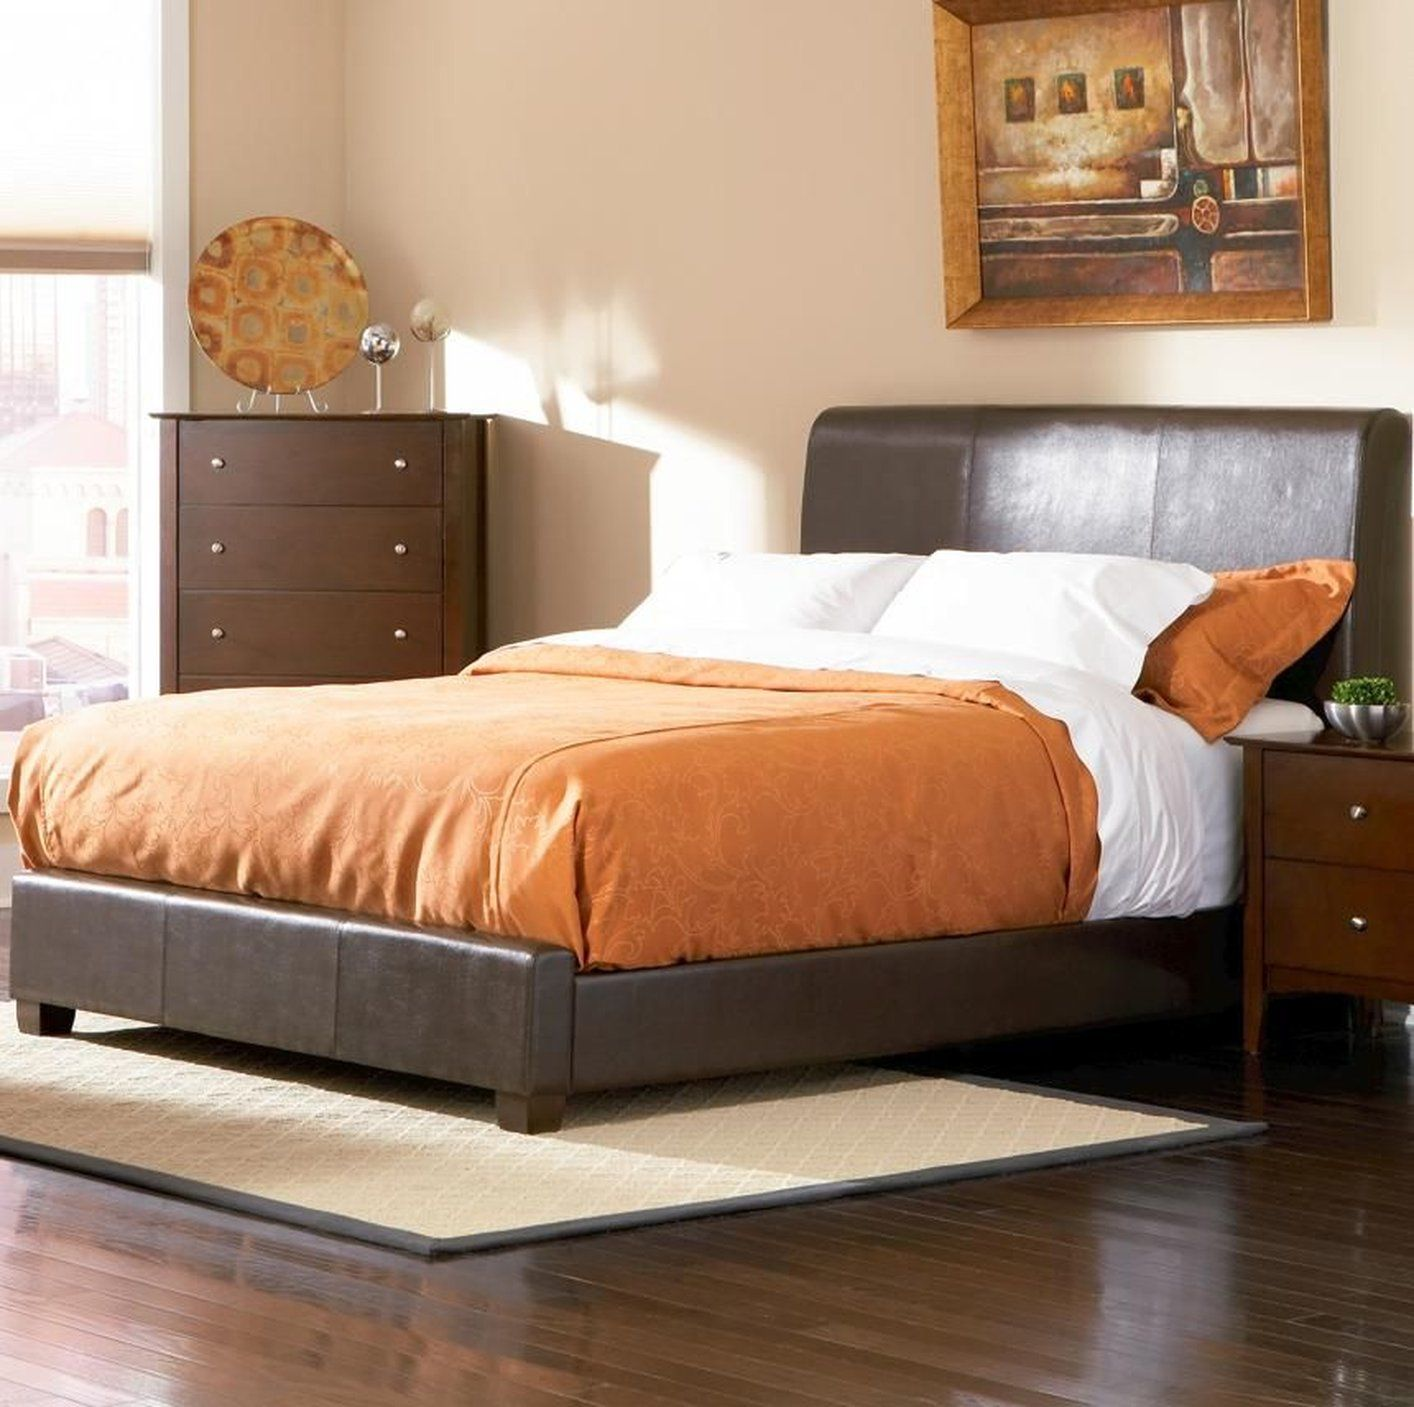 awesome California king beds with orange bedding | King Beds | Pinterest